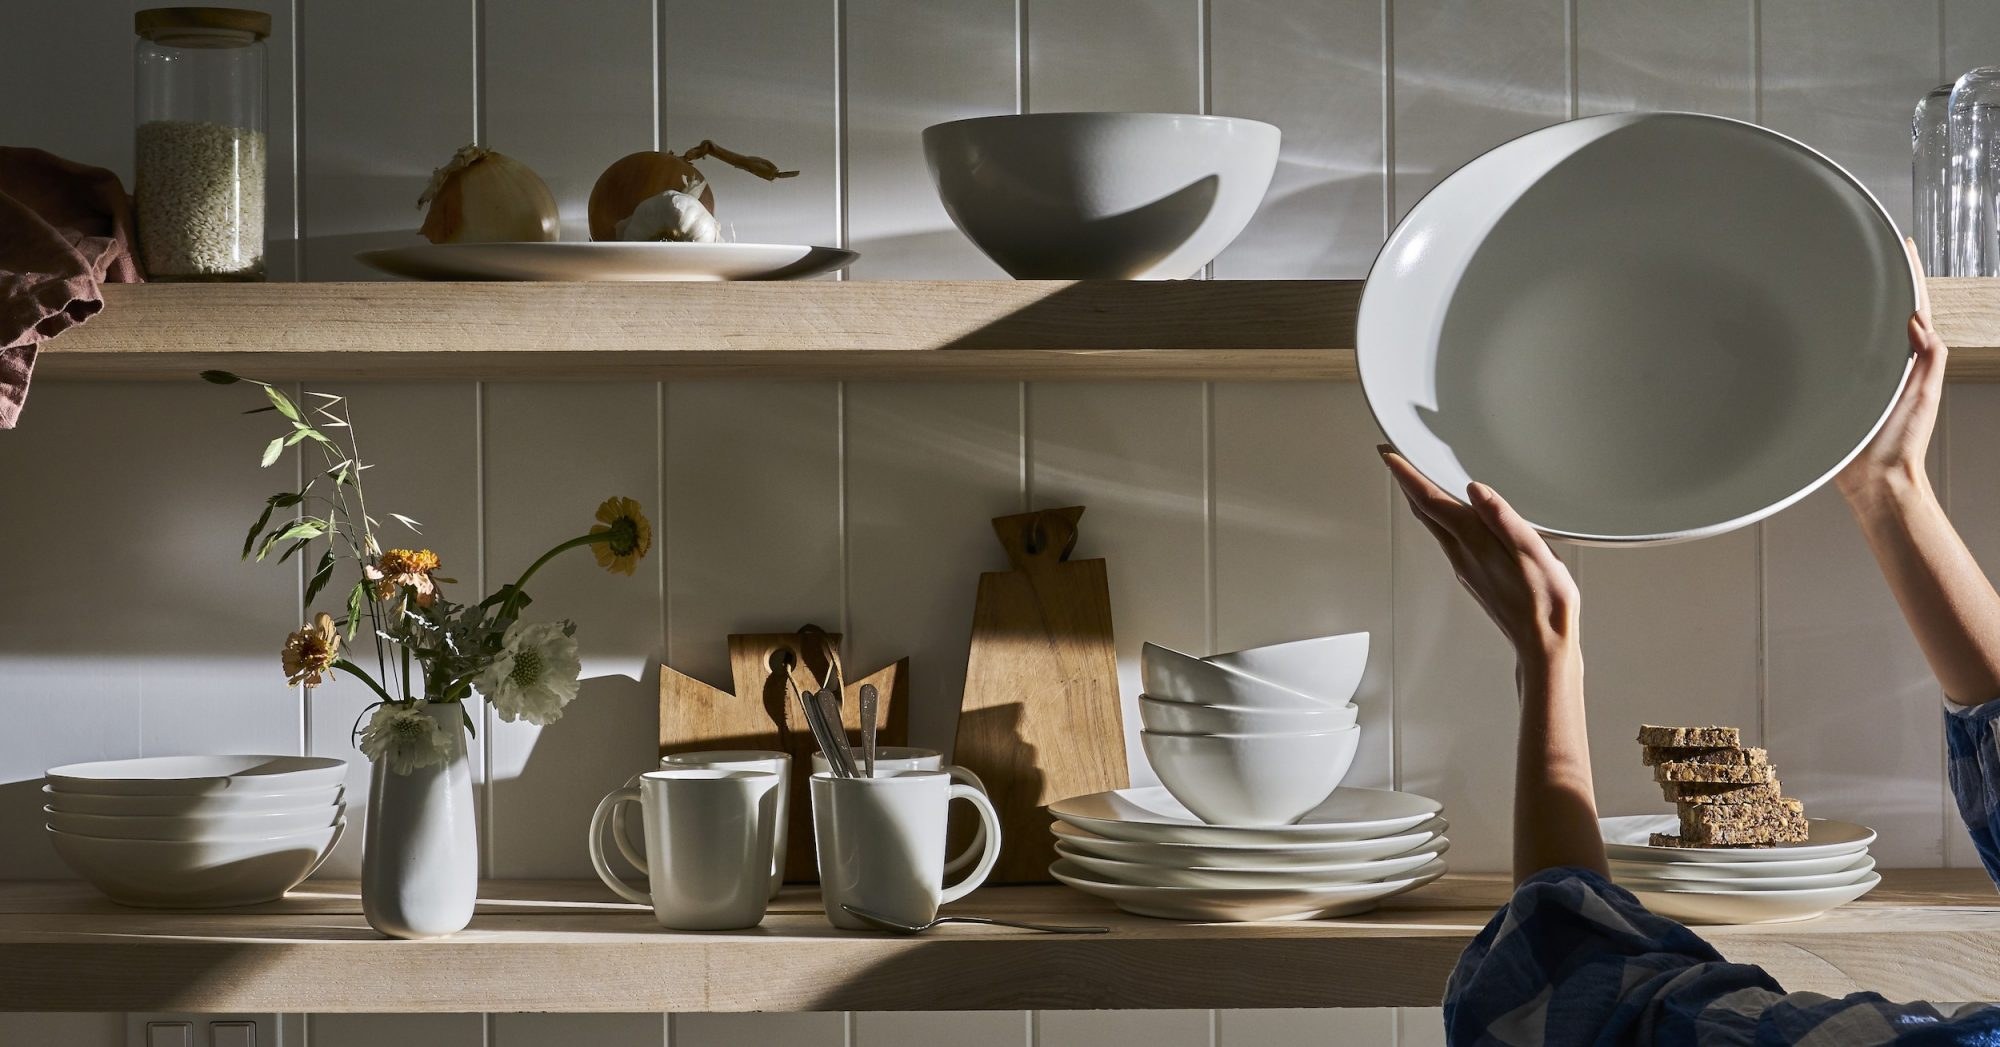 White Dinnerware Year and Day, plates and bowls on open shelving